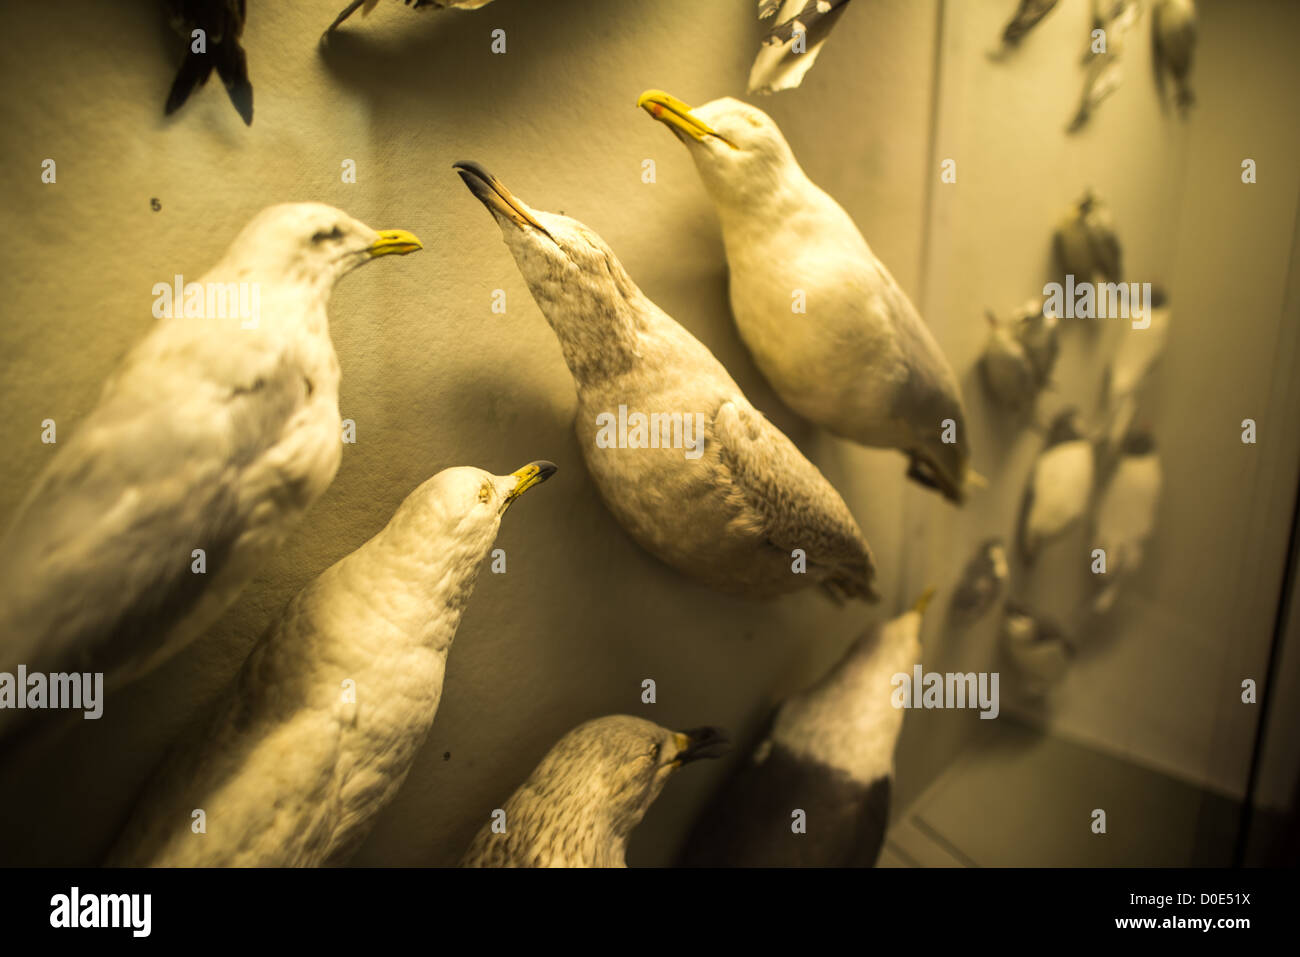 NEW YORK, NY - Seagull specimens on display at the Museum of Natural History in New York's Upper West Side neighborhood, - Stock Image